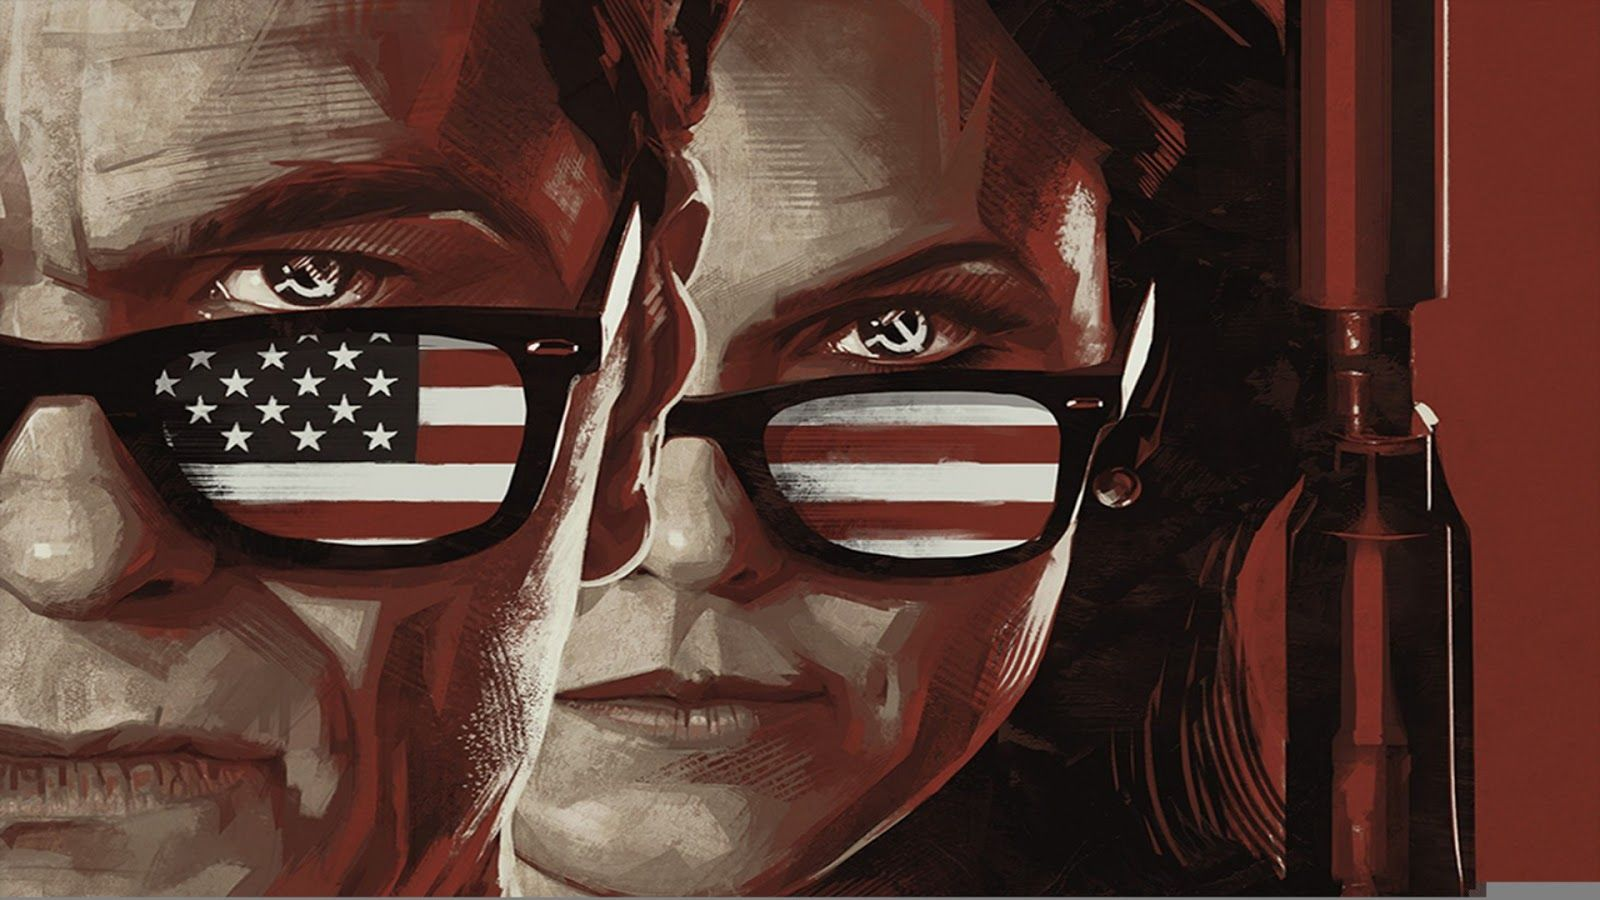 The Americans Hd Wallpaper For Desktop Tablet Ipad Iphone And